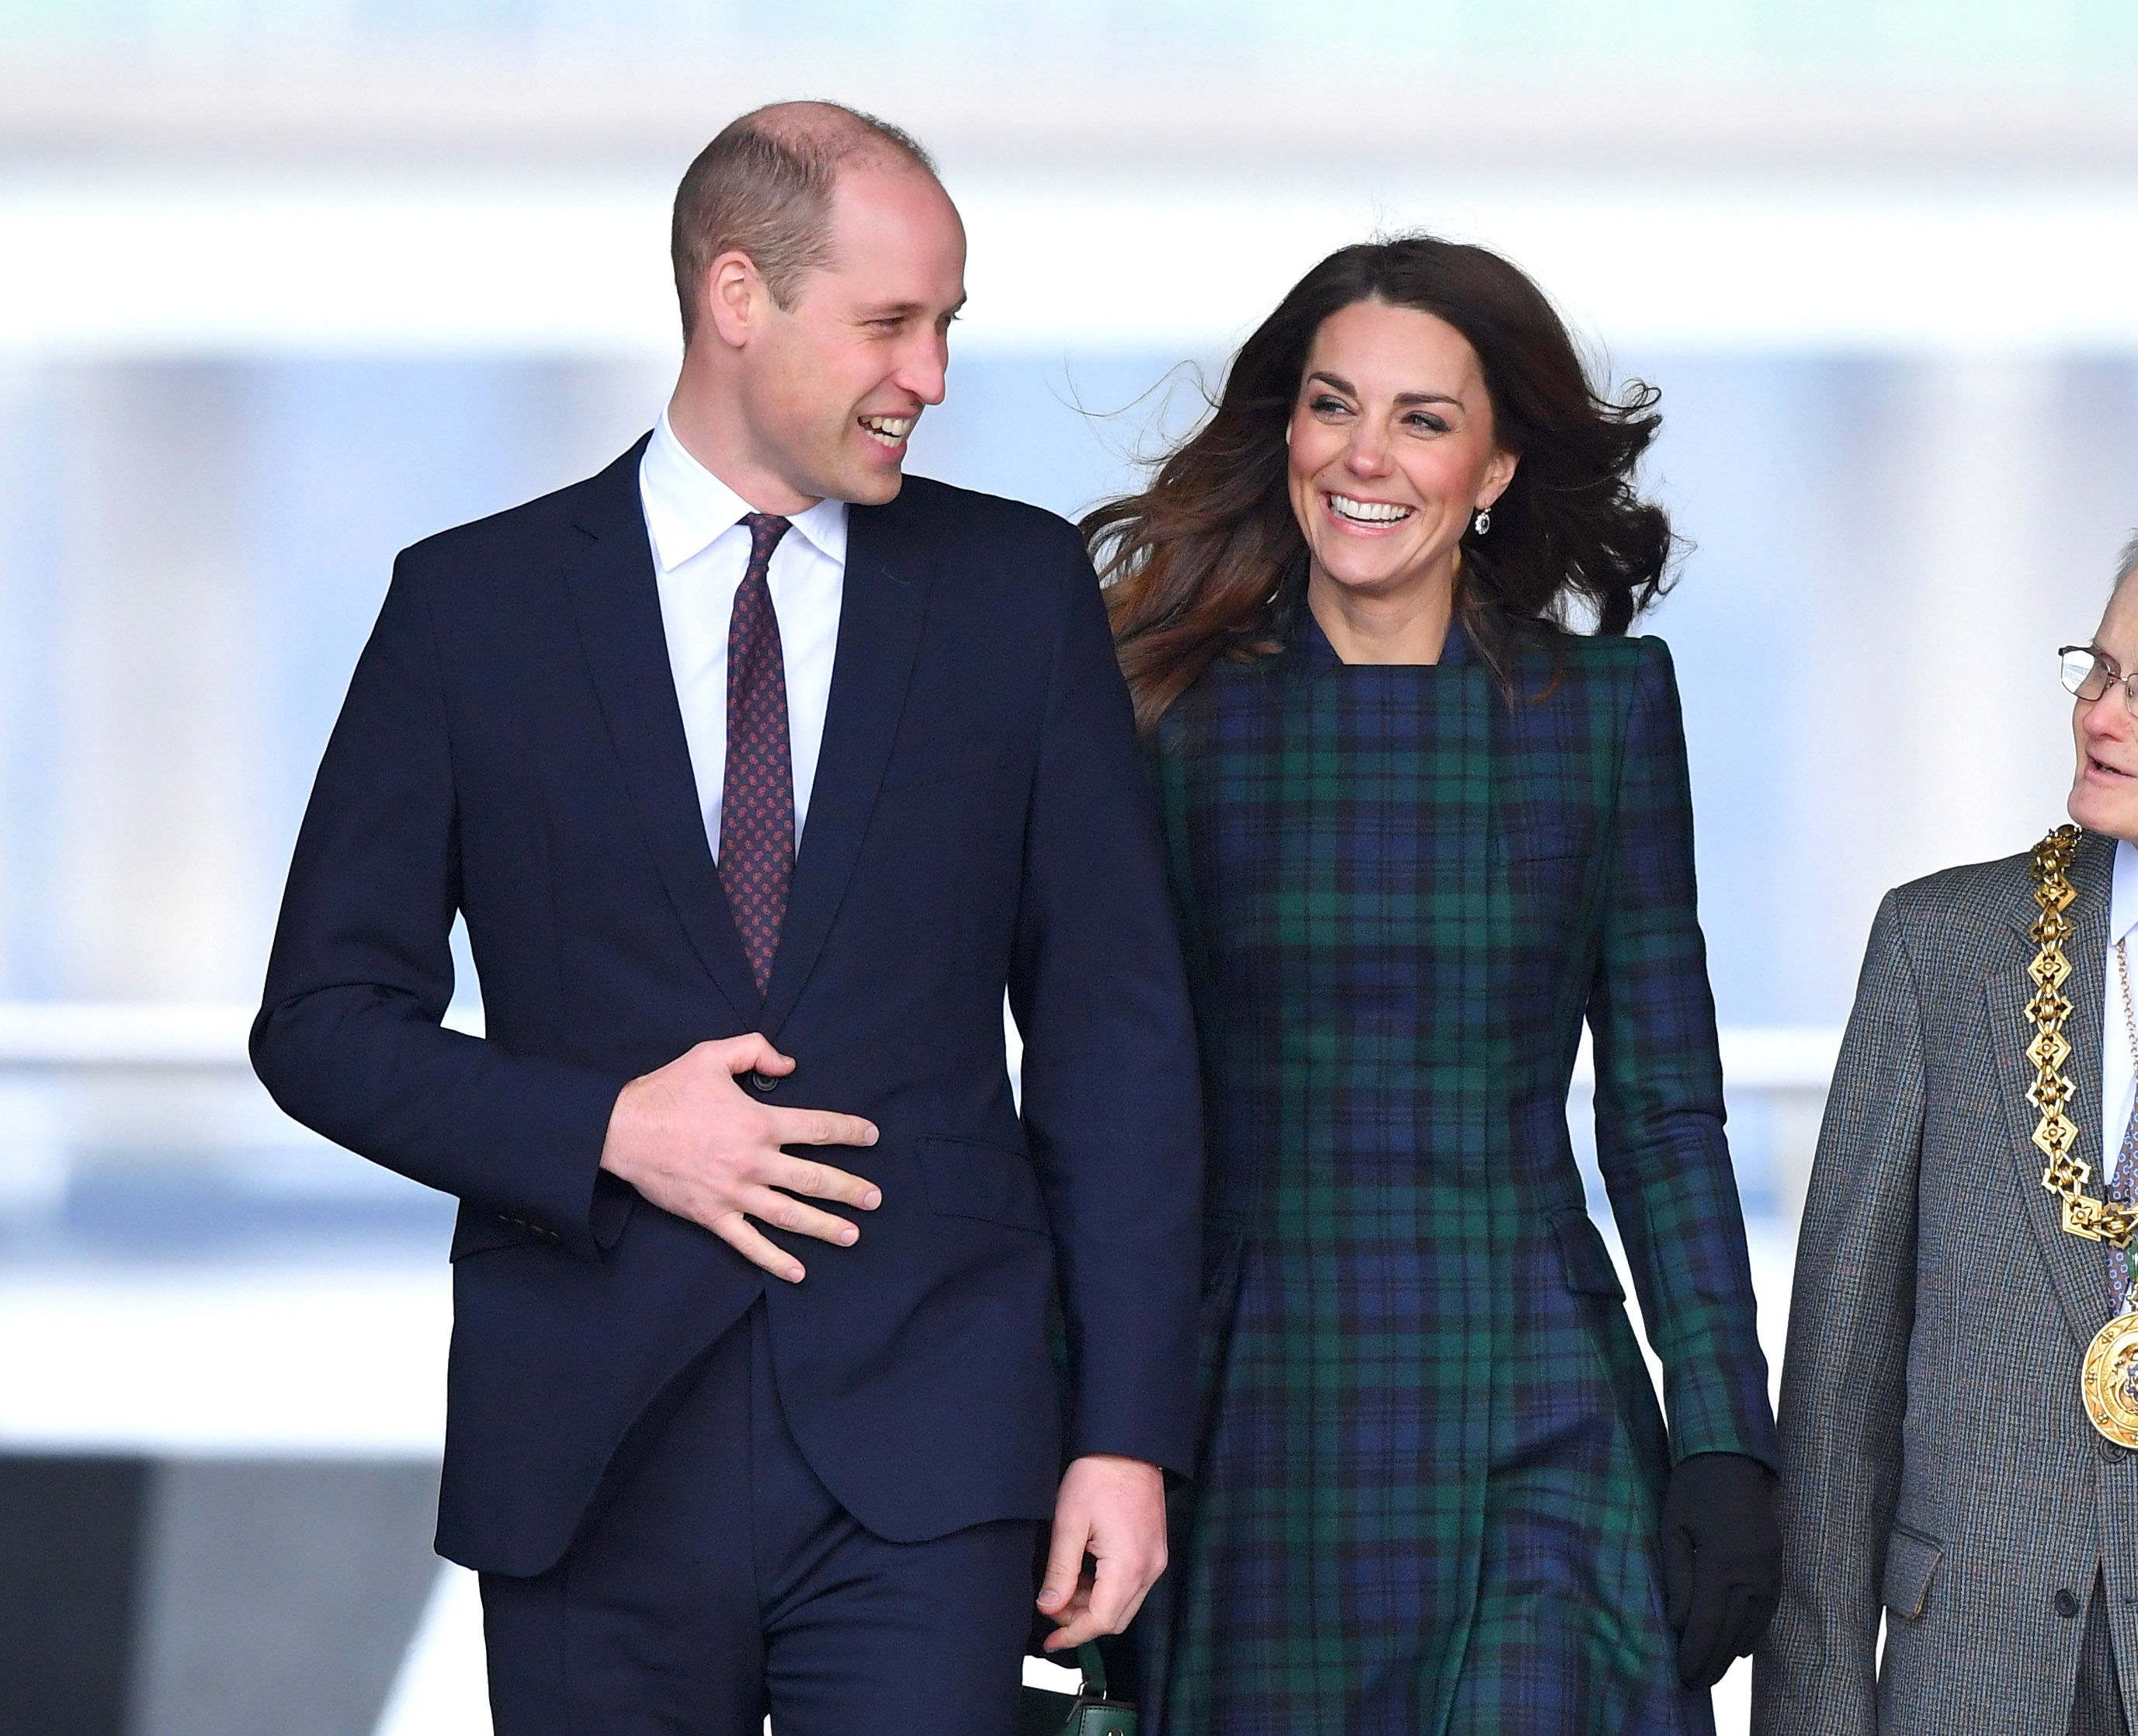 Kate Middleton and Prince William Reportedly Had Two Secret